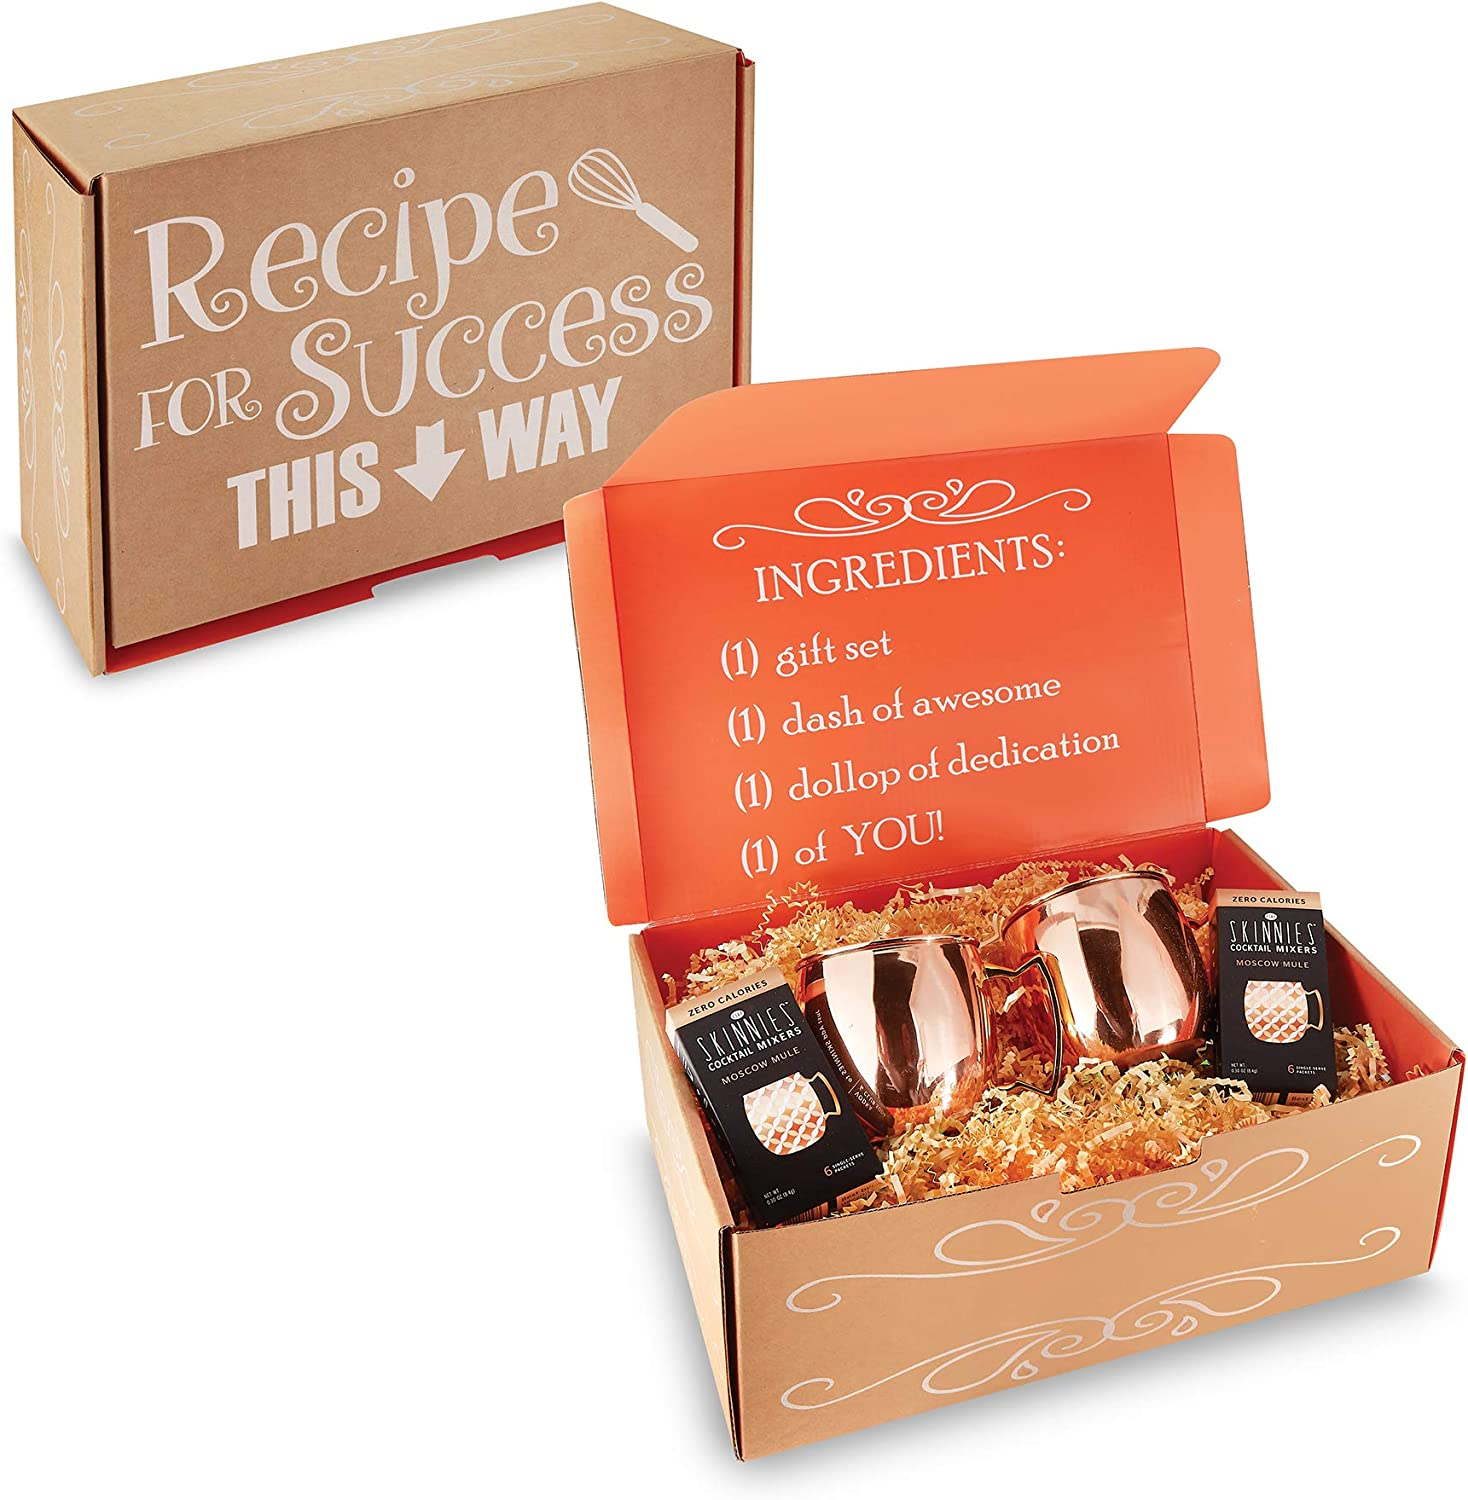 Gordon Sinclair Moscow Mule Mixer - The Mixer Gift Set Includes 2 x 18 oz Moscow Mules - 2 Boxes of Cocktail Mixers & is Packaged in a Festive Kraft Orange Gift Box - Valentines Day Gift Set